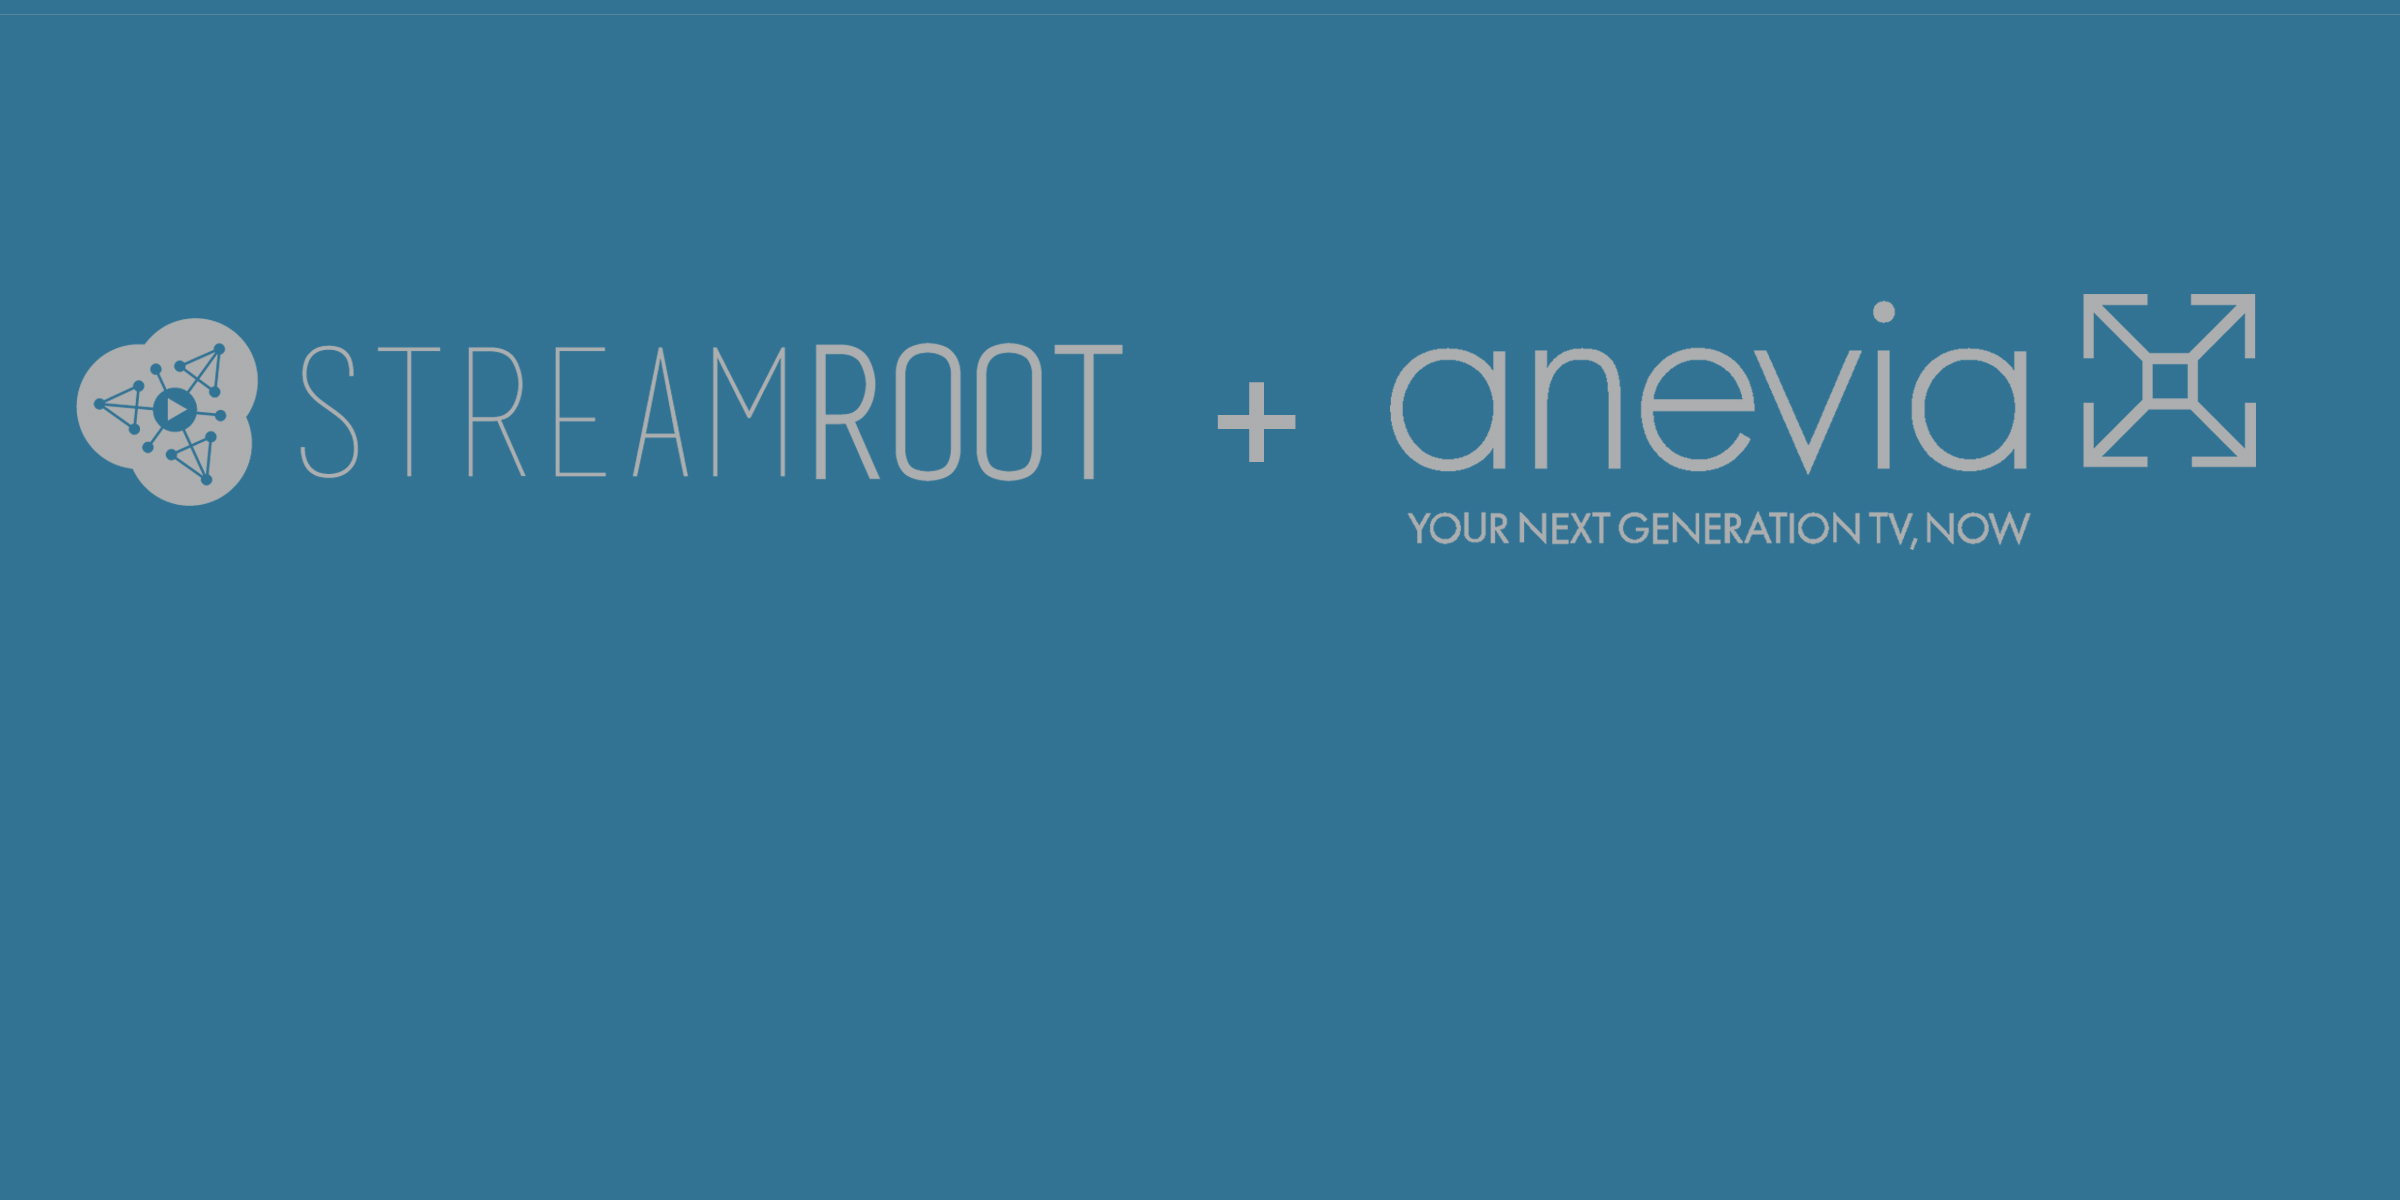 Streamroot and Anevia - a powerful combination